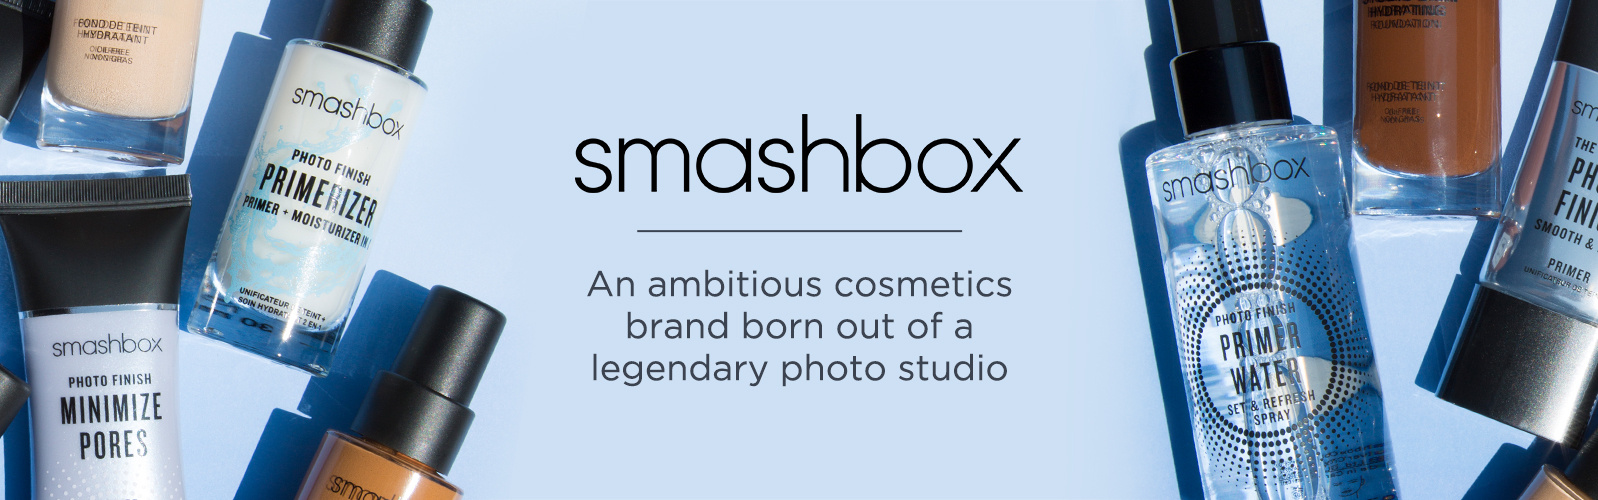 smashbox.  An ambitious cosmetics brand born out of a legendary photo studio.